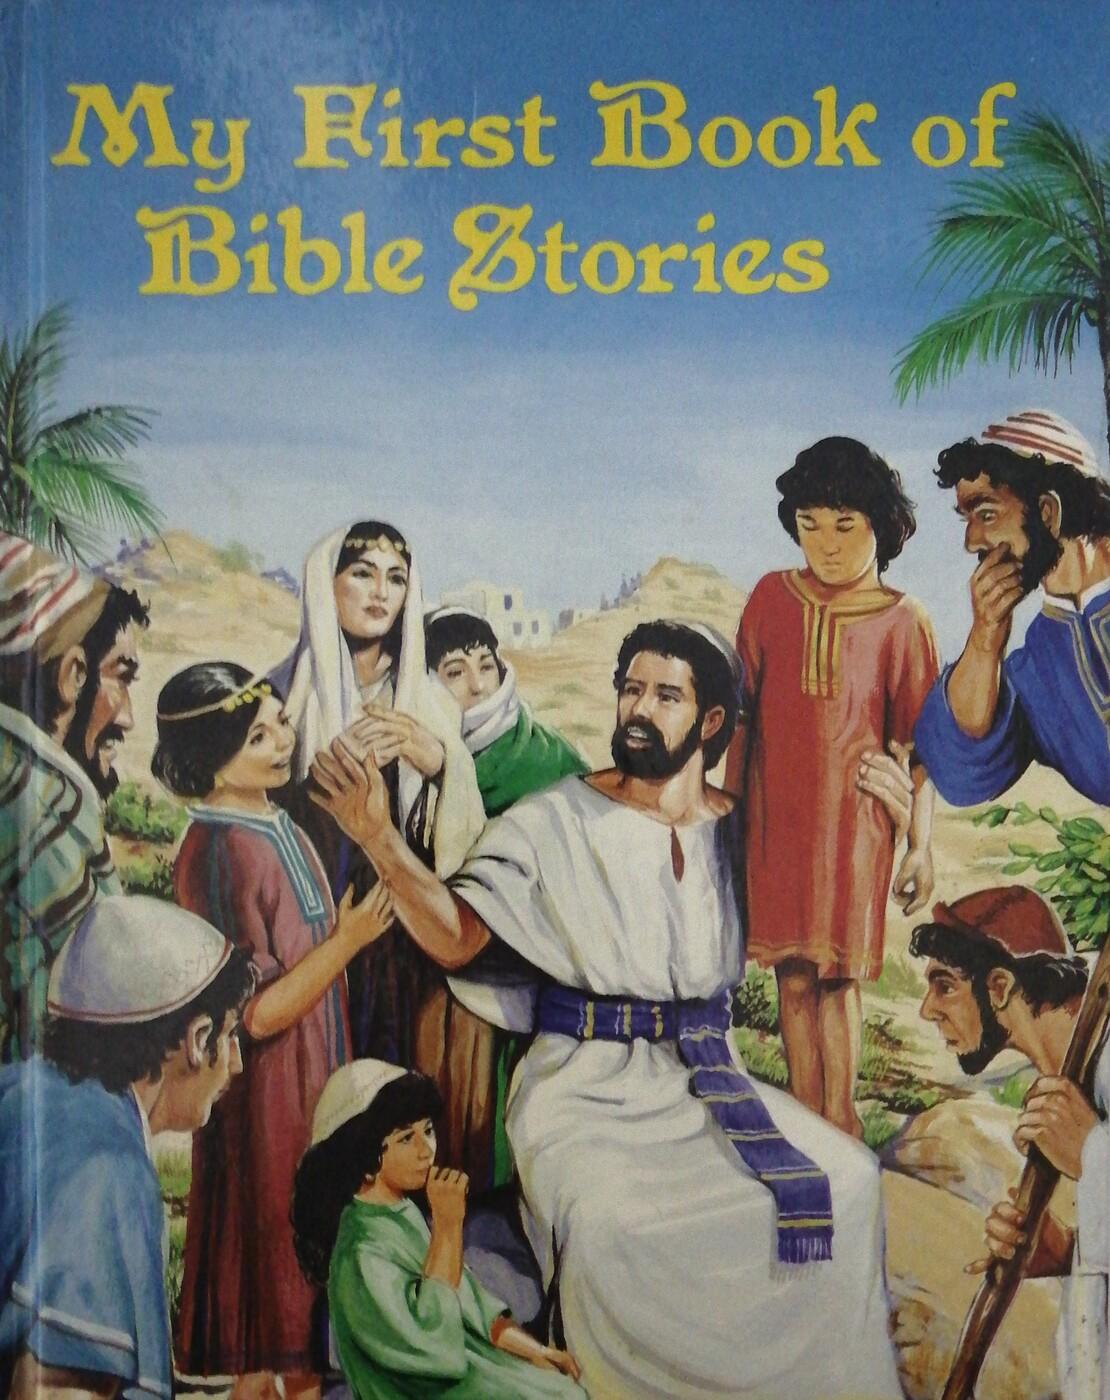 My First Book of Bible Stories